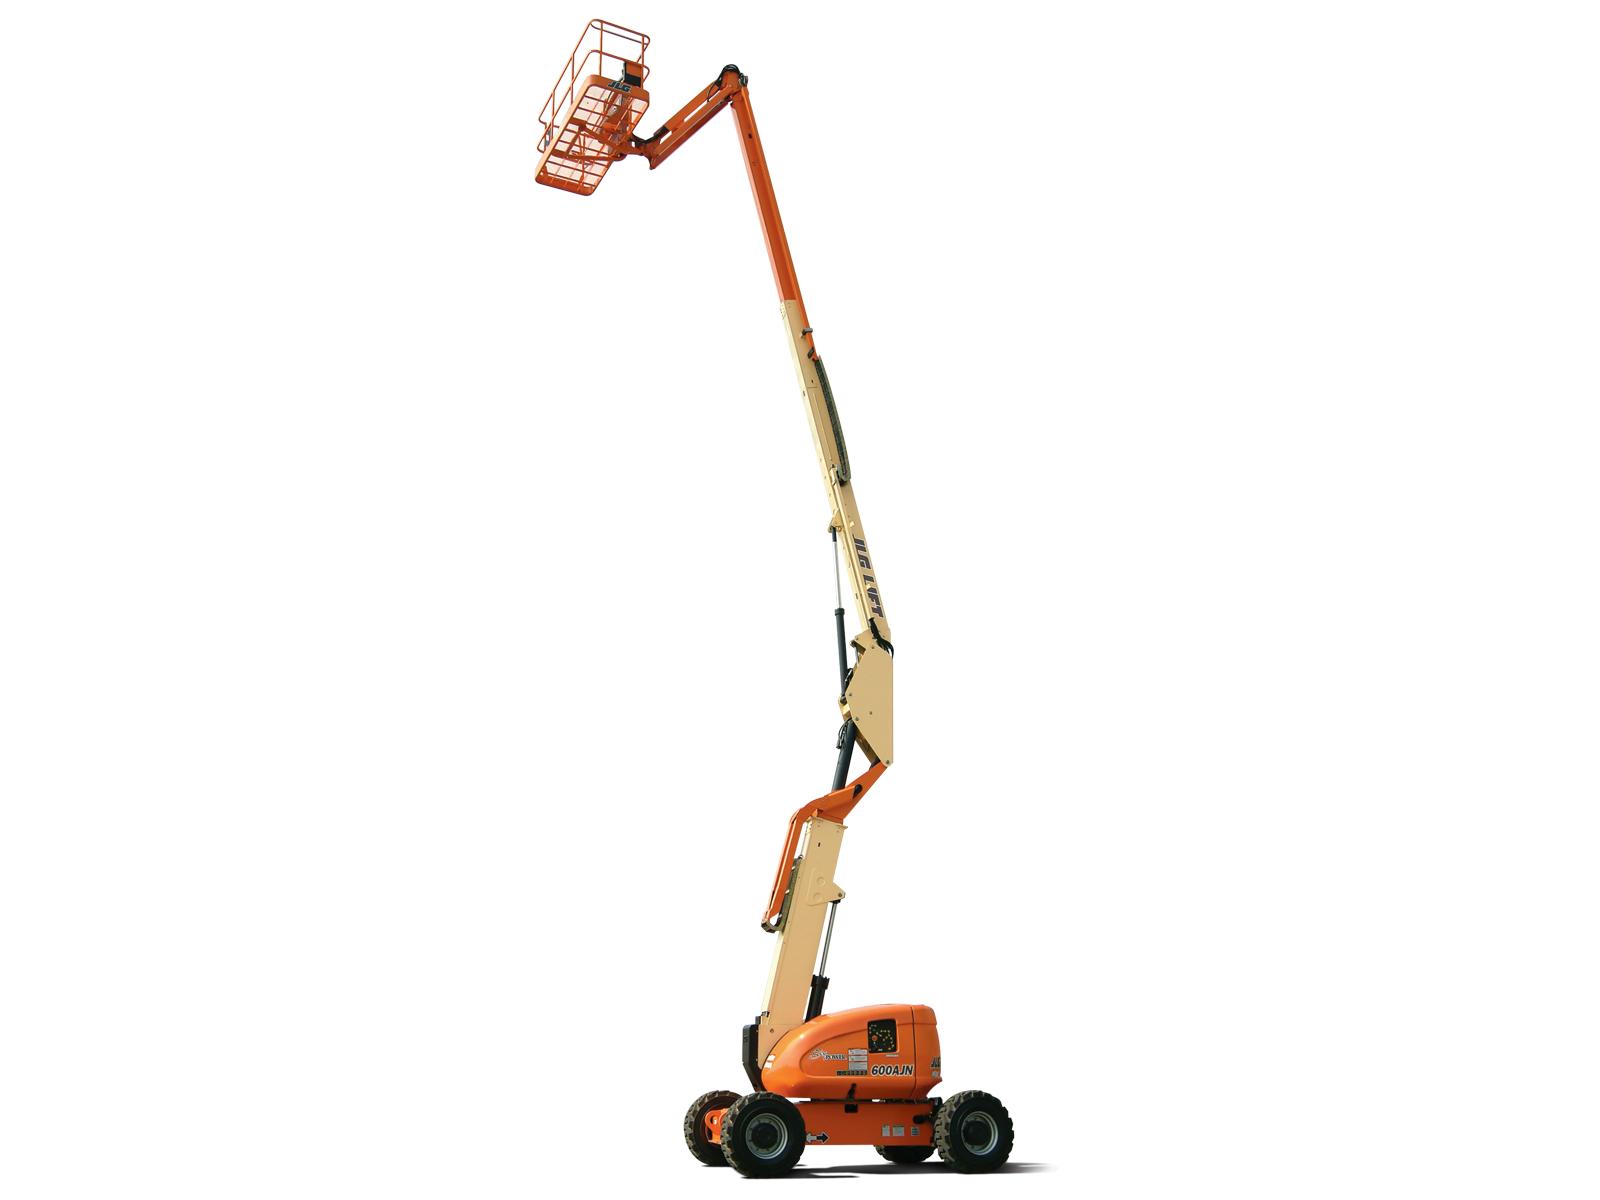 600ajn Articulating Narrow Boom Lift Jlg